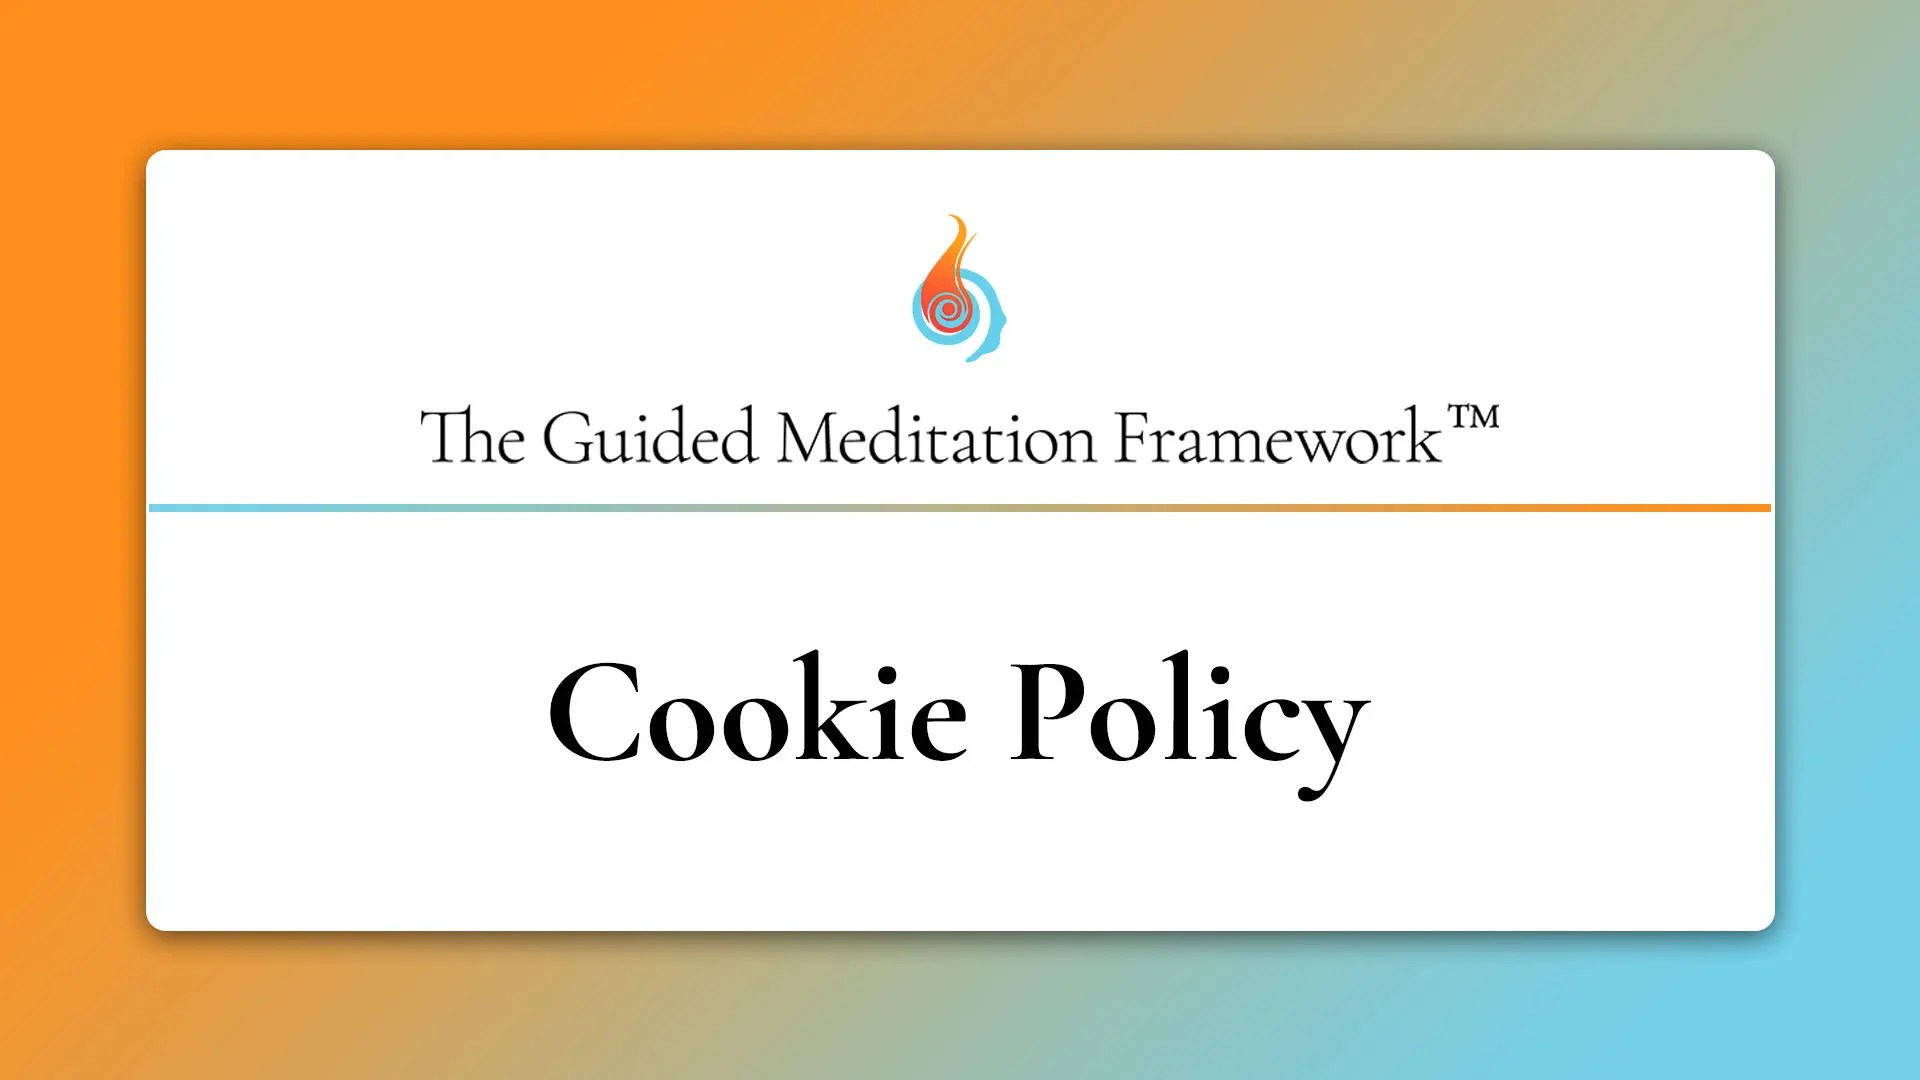 The Guided Meditation Framework cookie policy